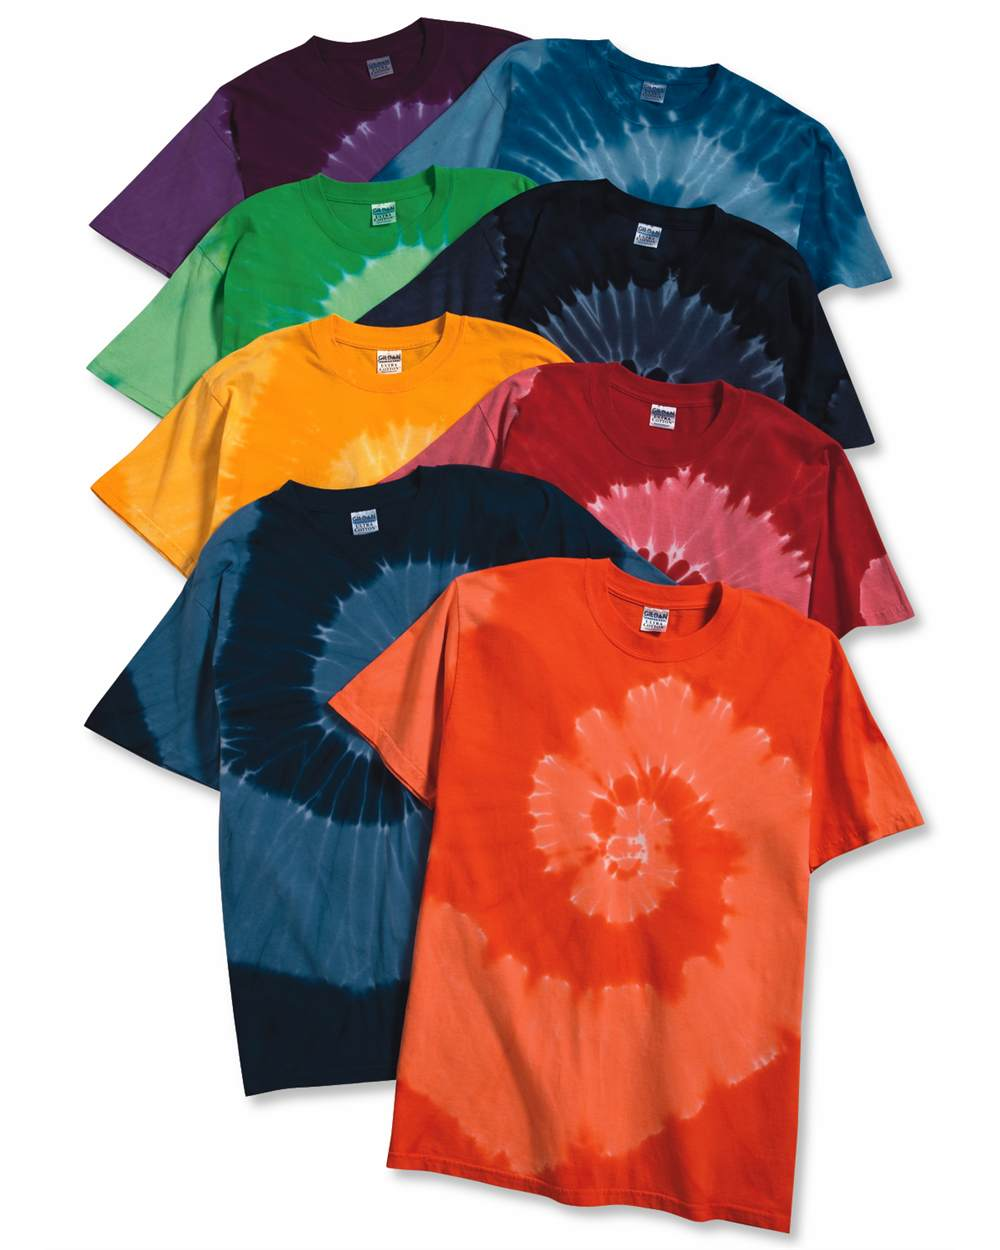 Tie-Dyed 20021 - Tone-on-Tone Spiral T-Shirt